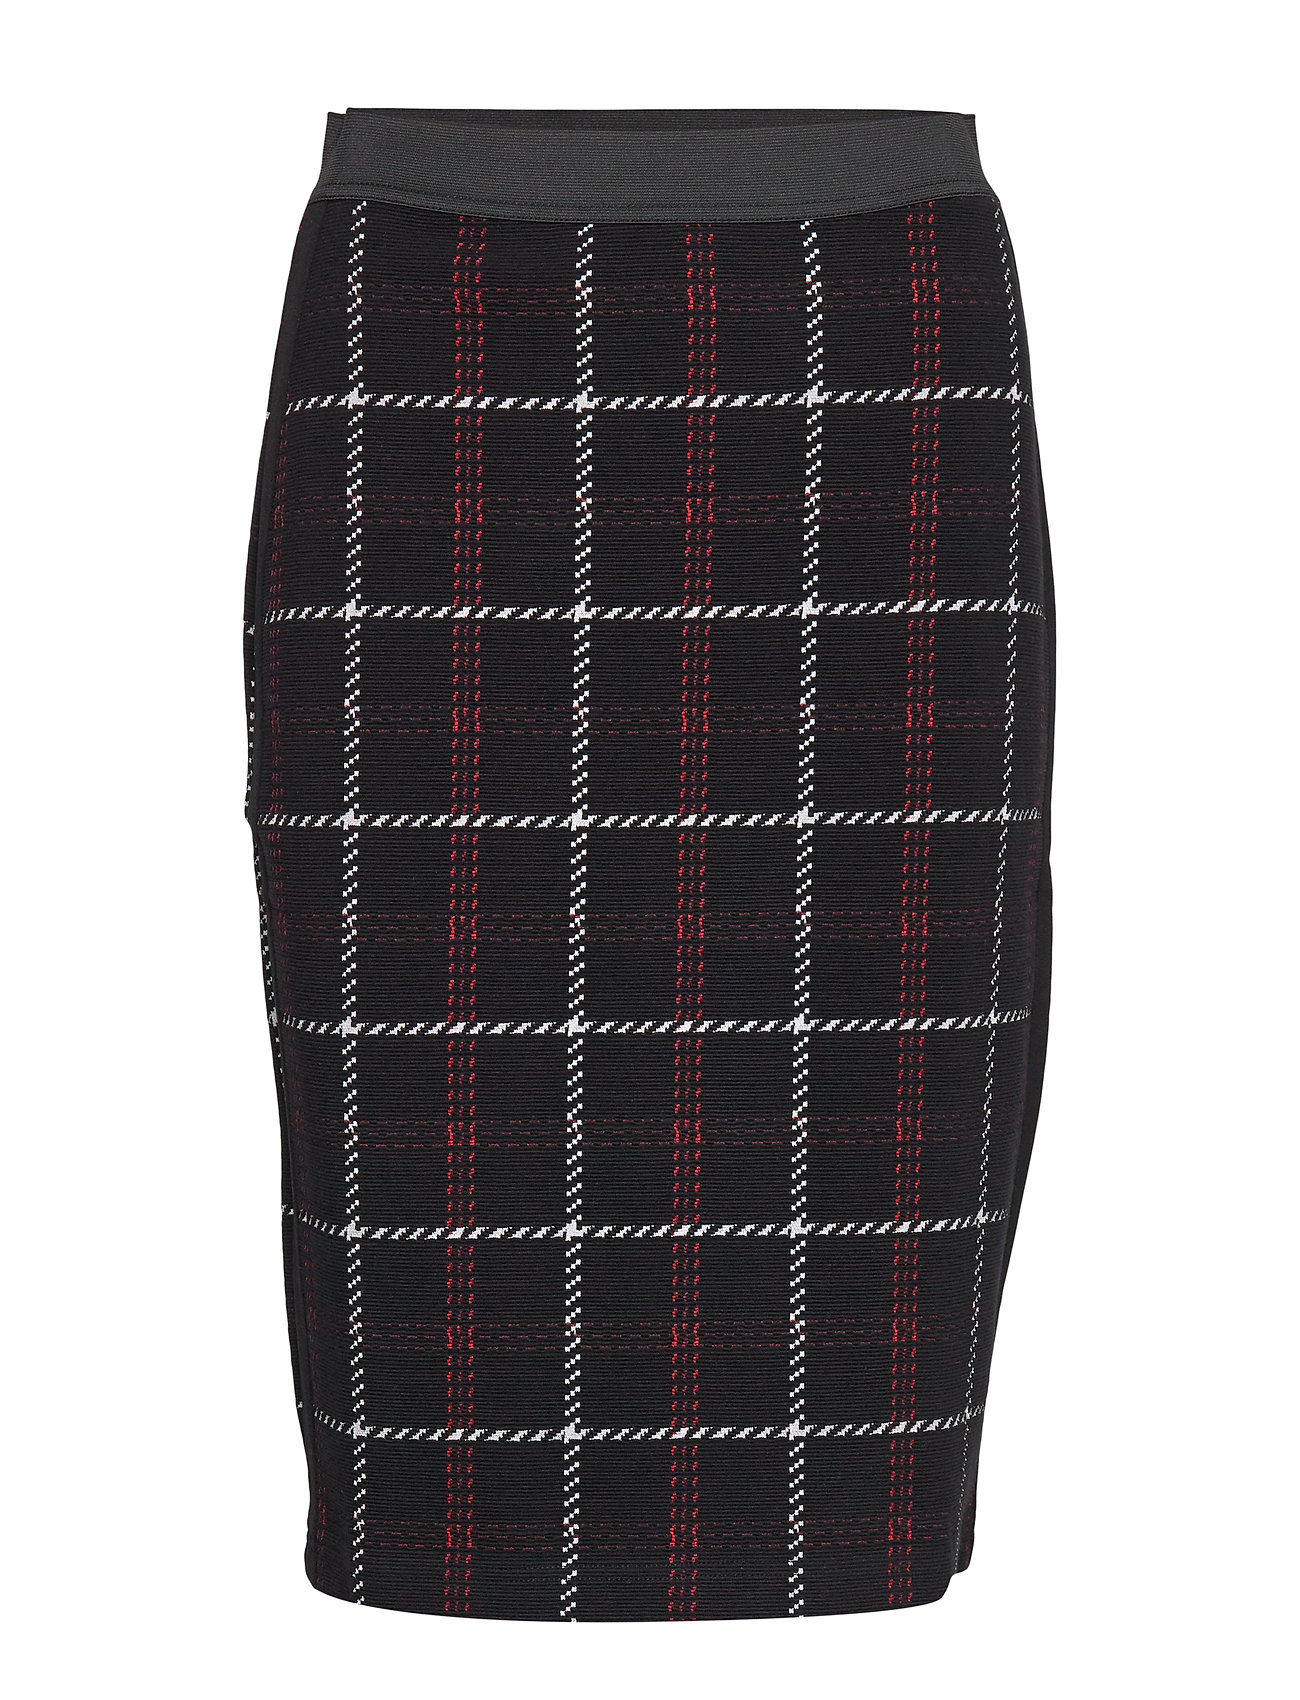 Gerry Weber SKIRT KNITWEAR - BLACK OFFWHITE RED CHECK